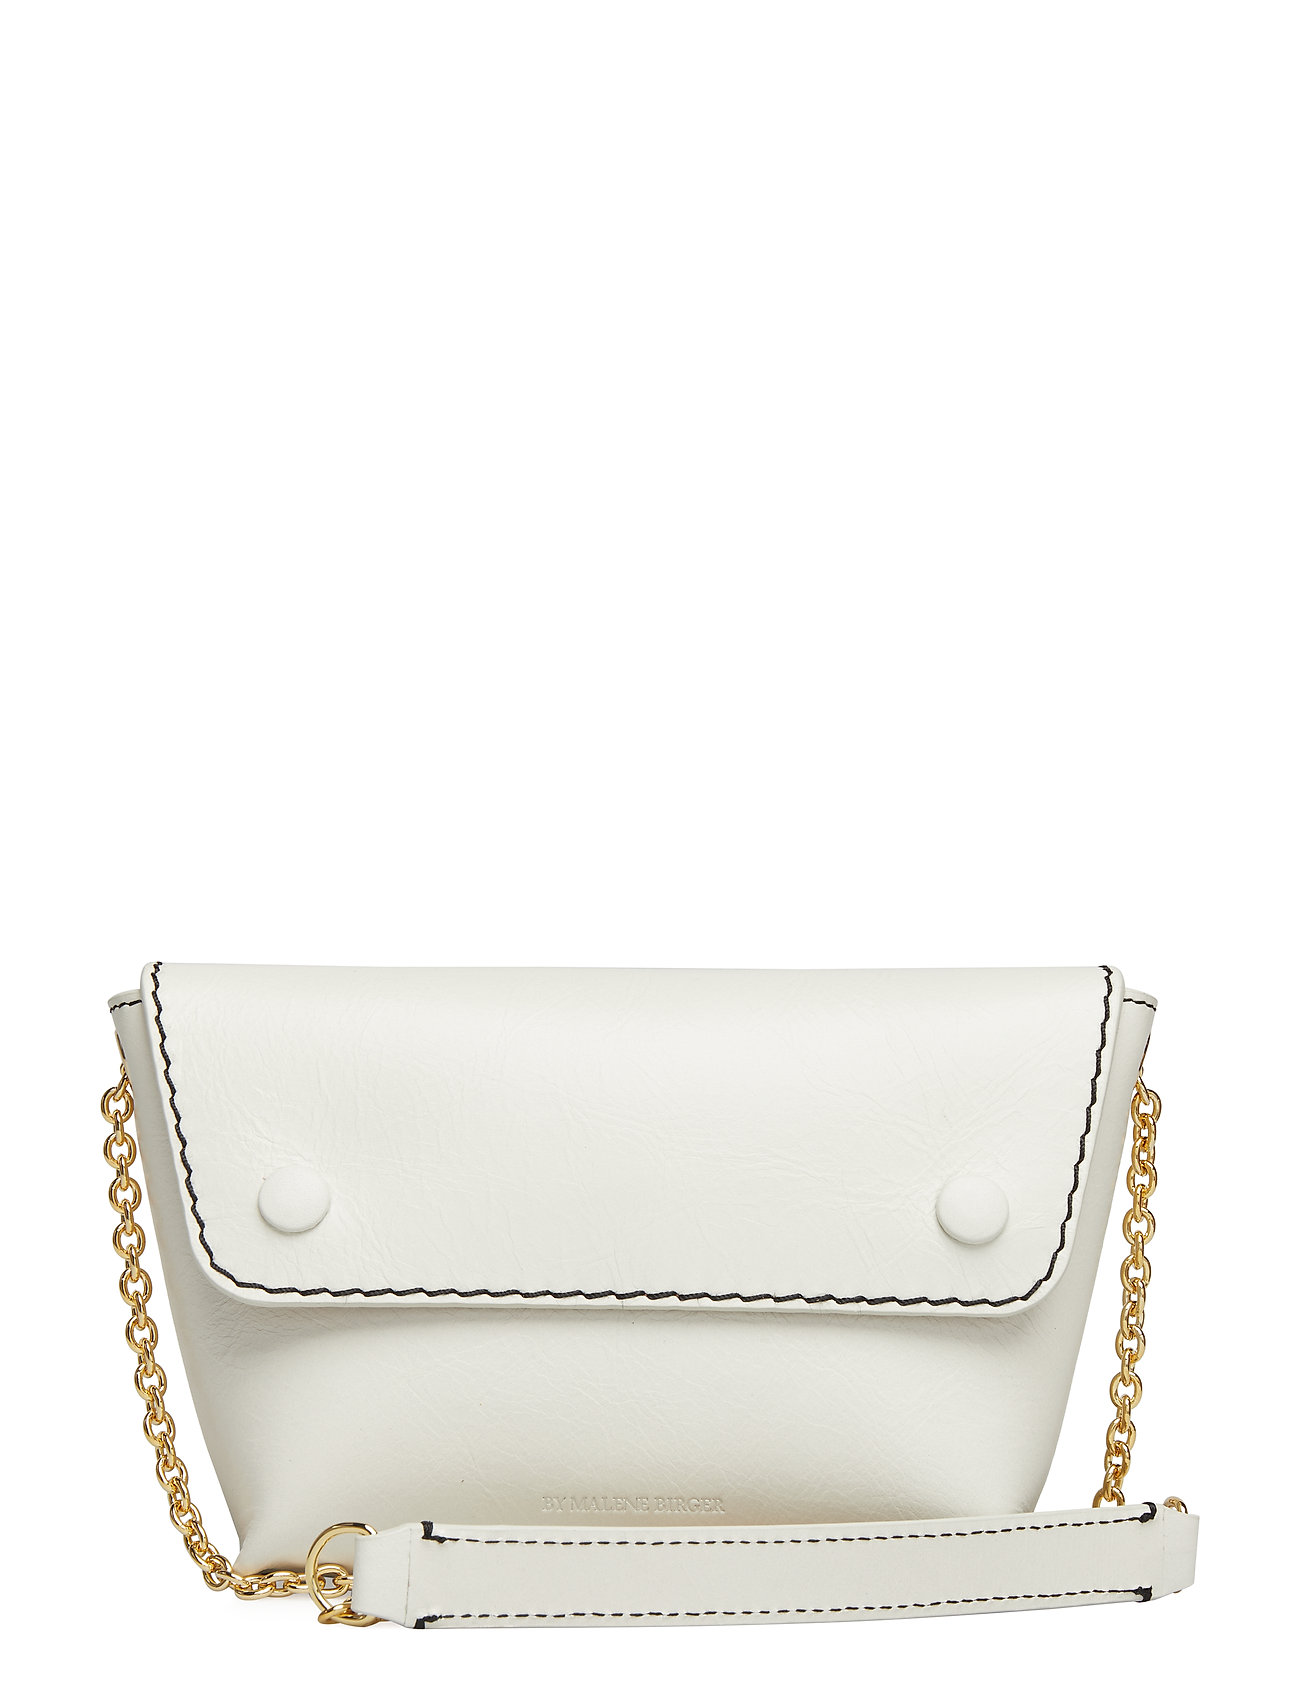 By Malene Birger BAG7024S91 - SOFT WHITE